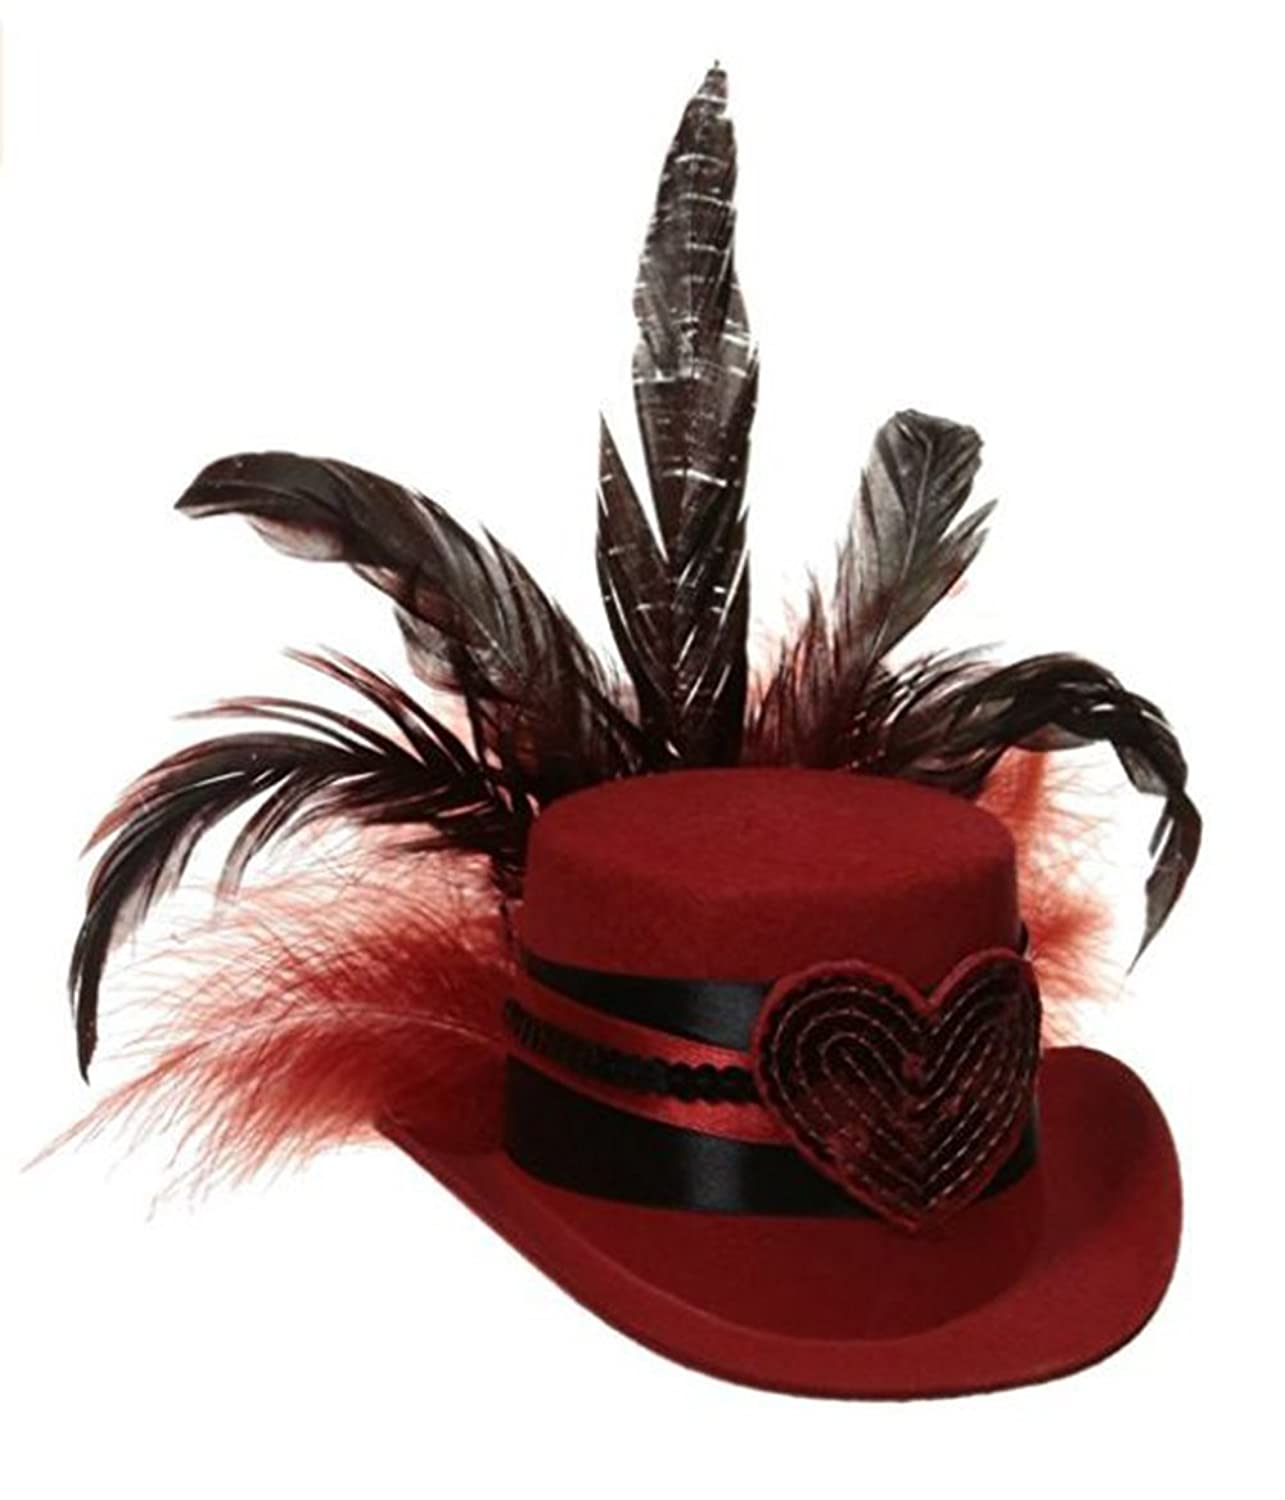 Black Feathered Red Queen of Hearts Fascinator Hat Costume Accessory - DeluxeAdultCostumes.com